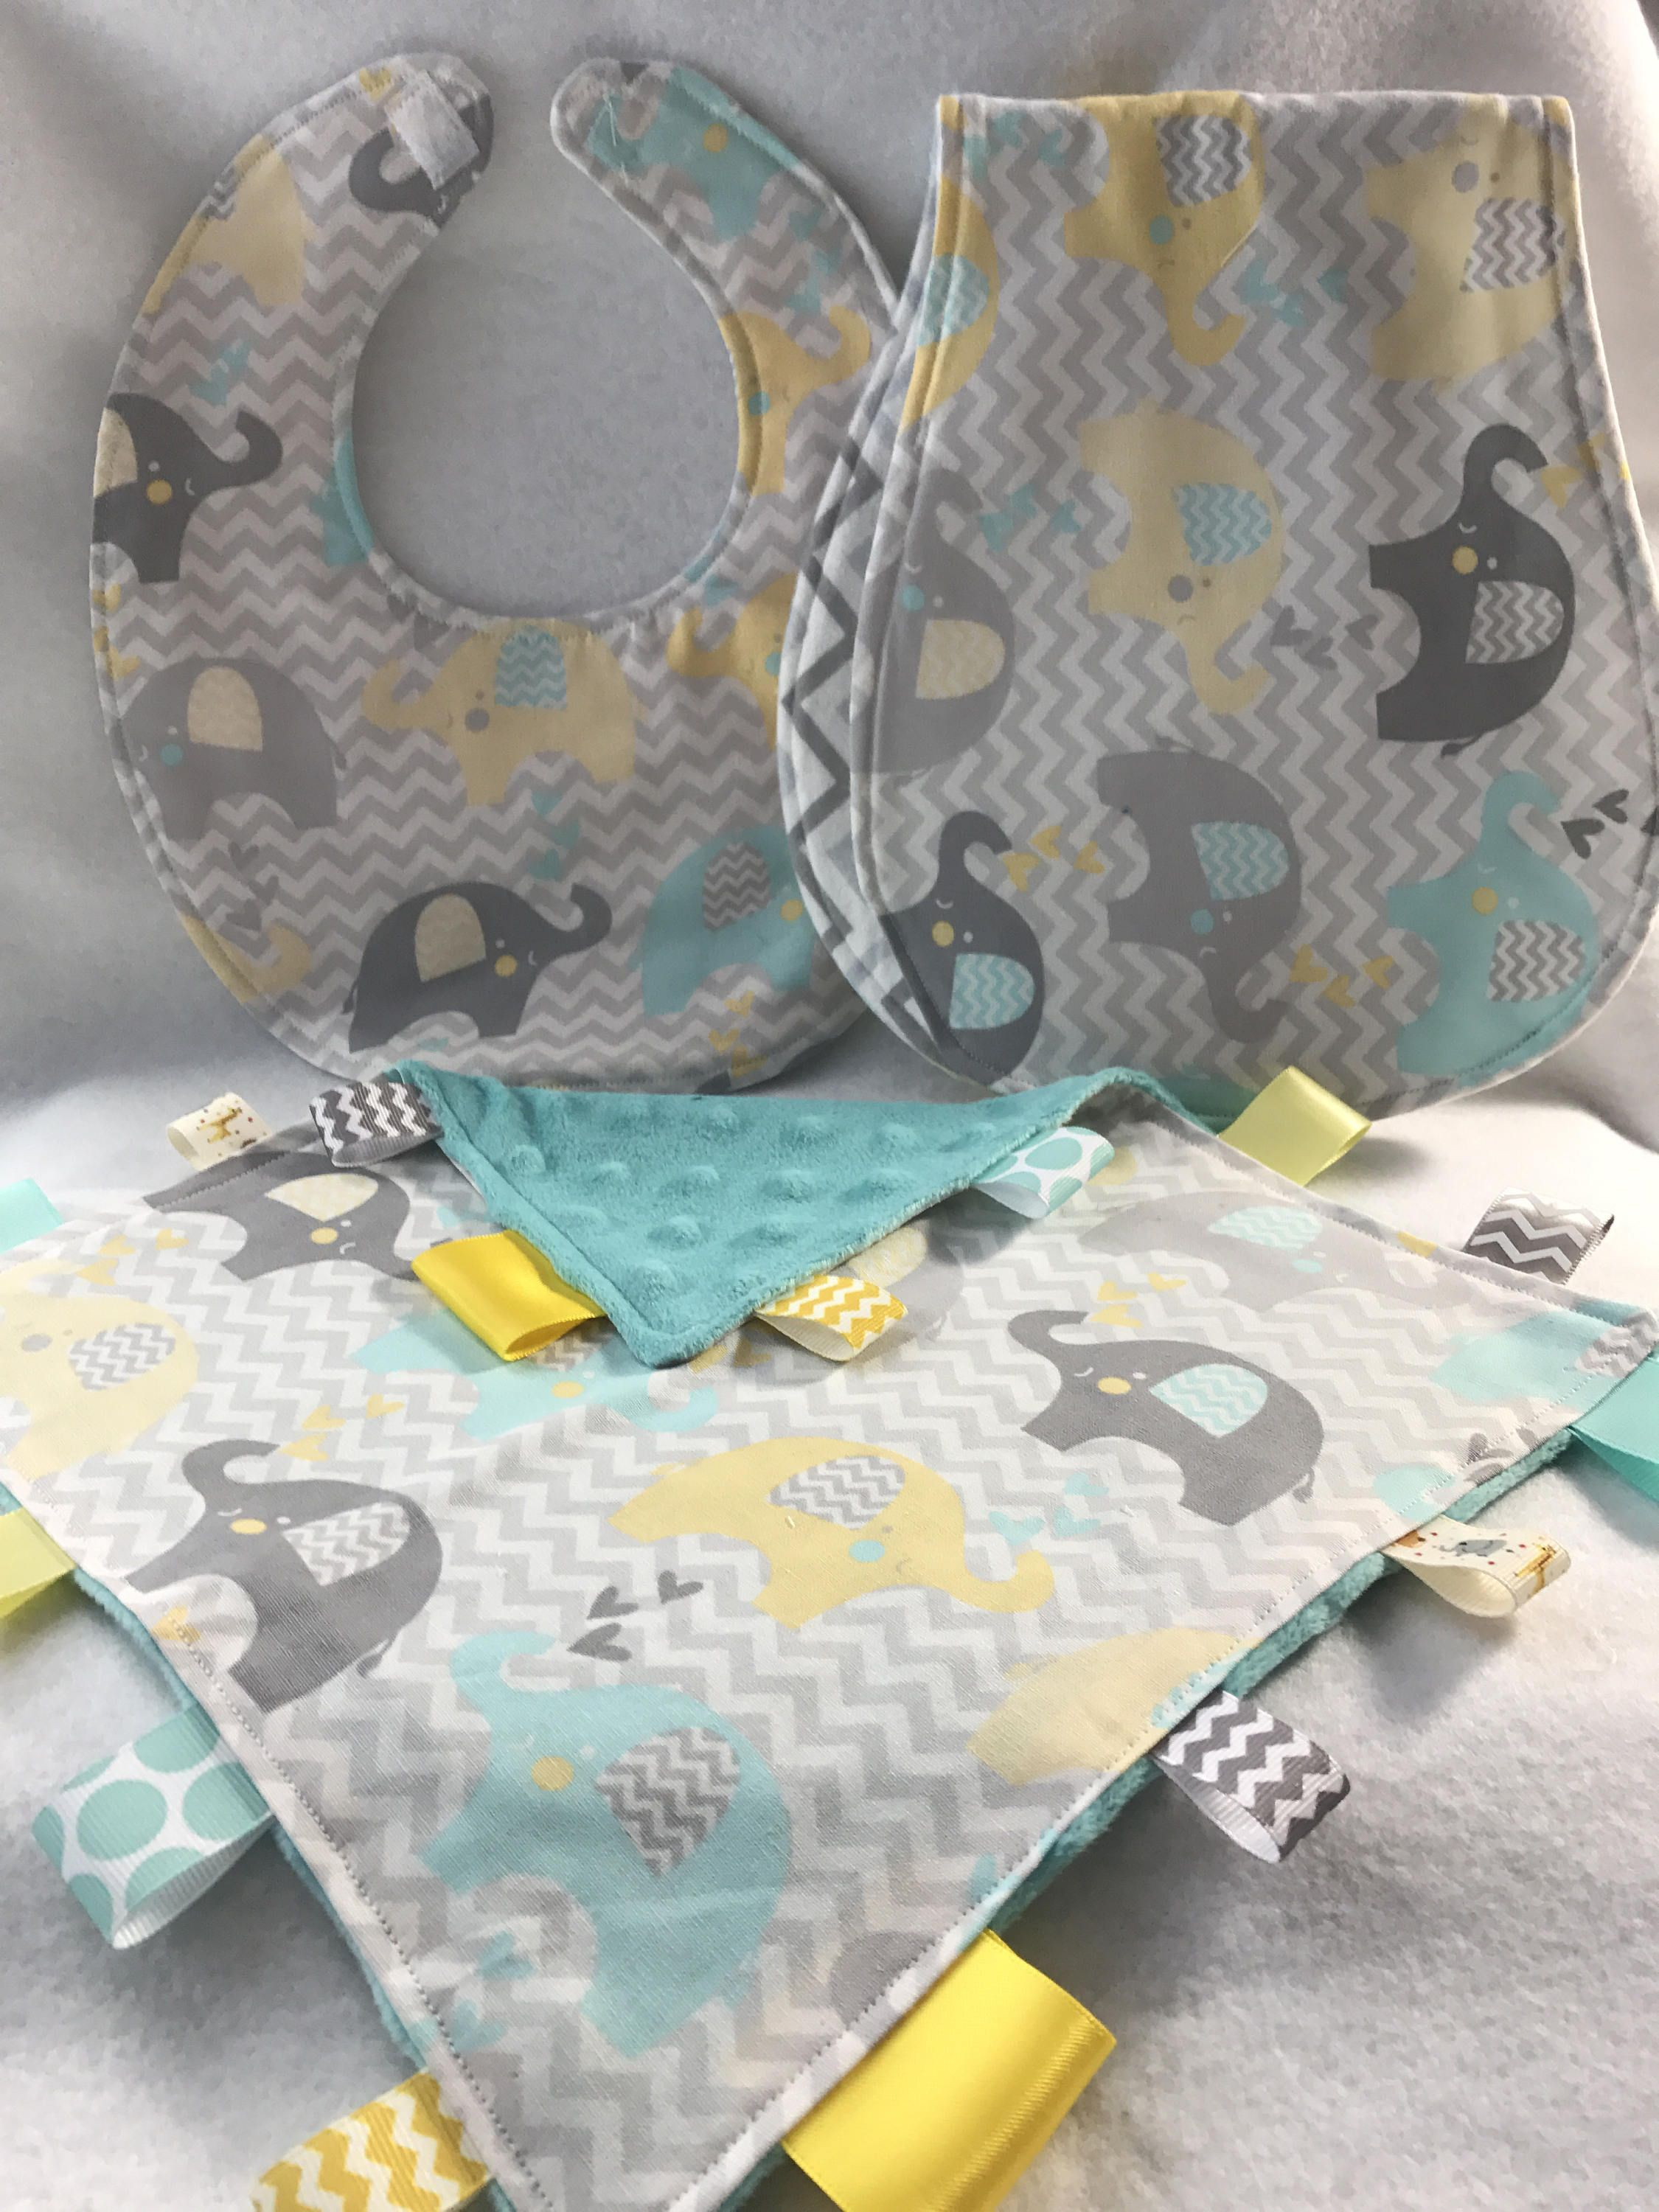 Unisex teal gray and yellow elephant baby gift set bib burp unisex teal gray and yellow elephant baby gift set bib burp cloth lovie negle Images